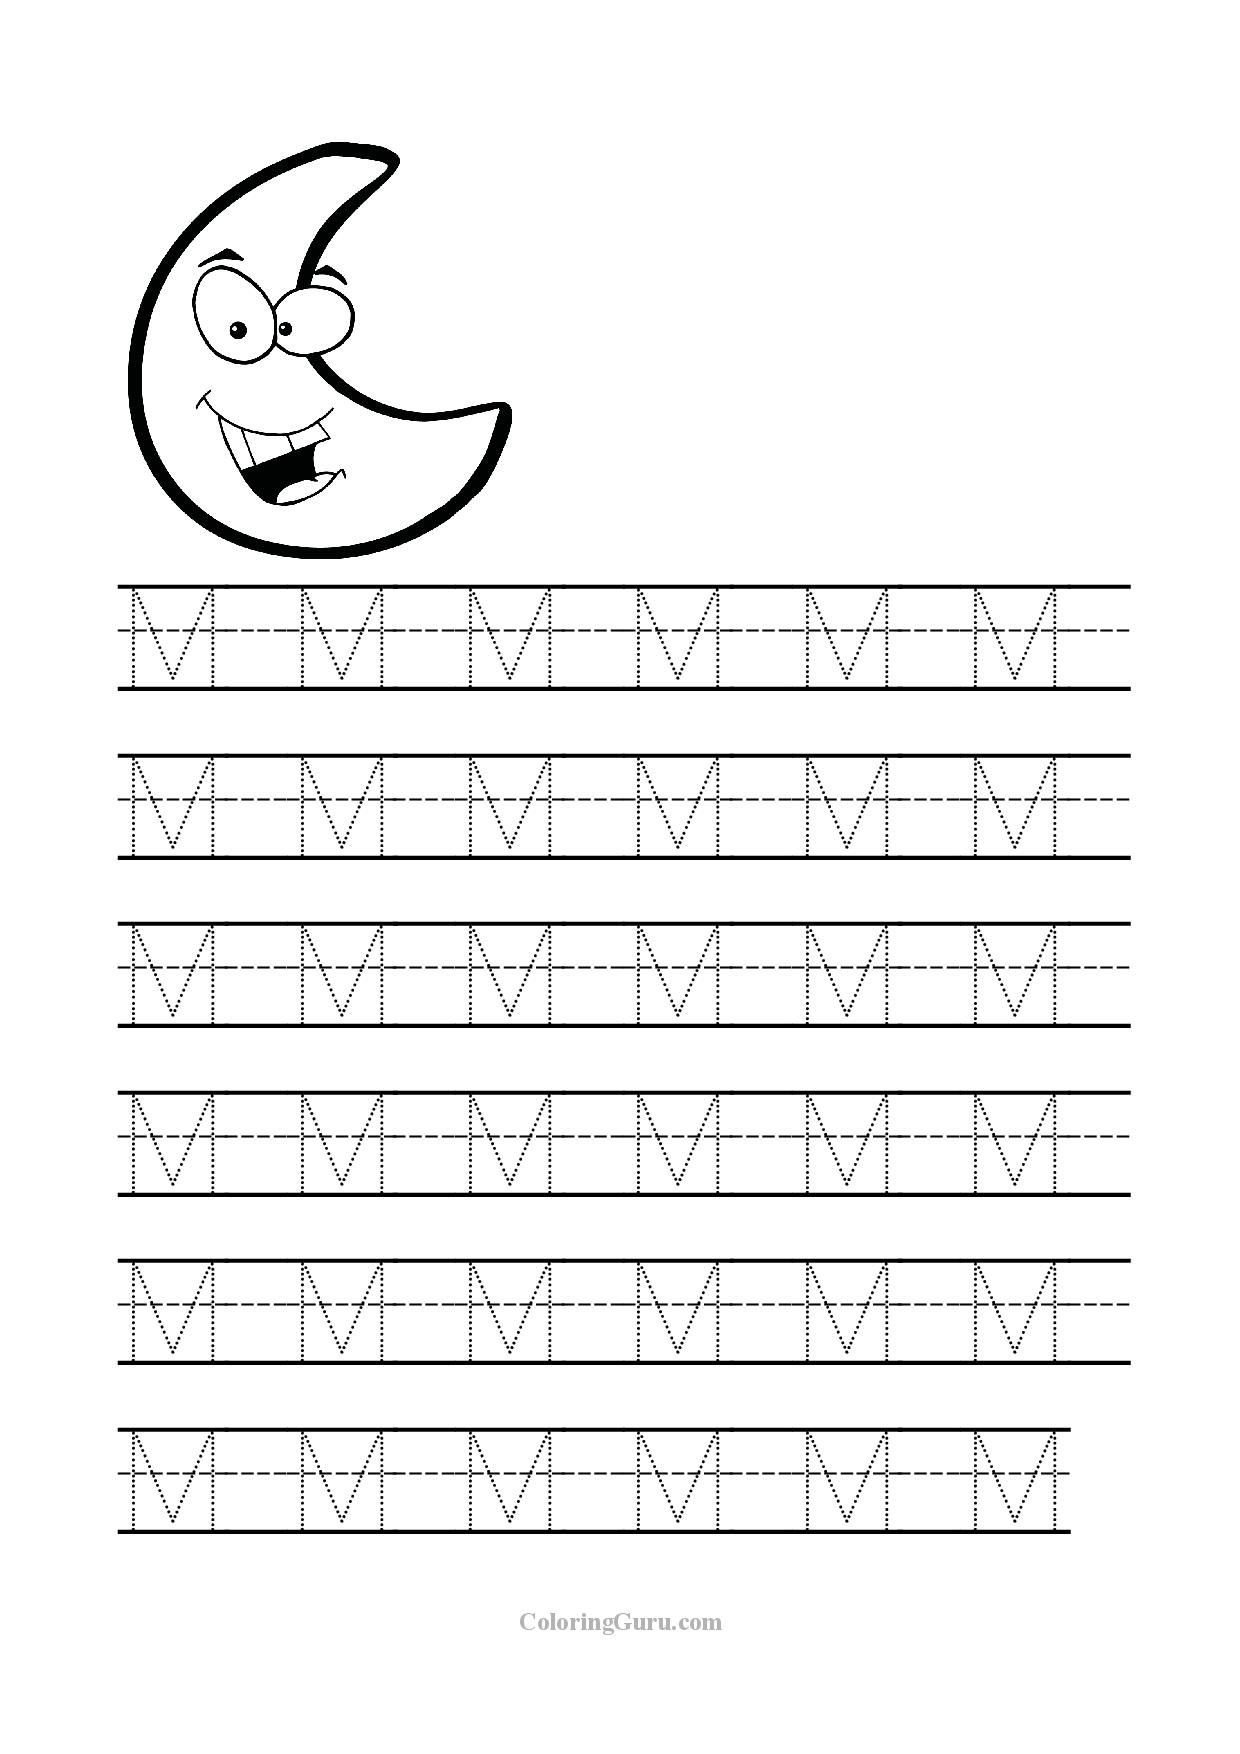 Letter M Worksheets for Preschoolers Free Printable Tracing Letter M Worksheets for Preschool